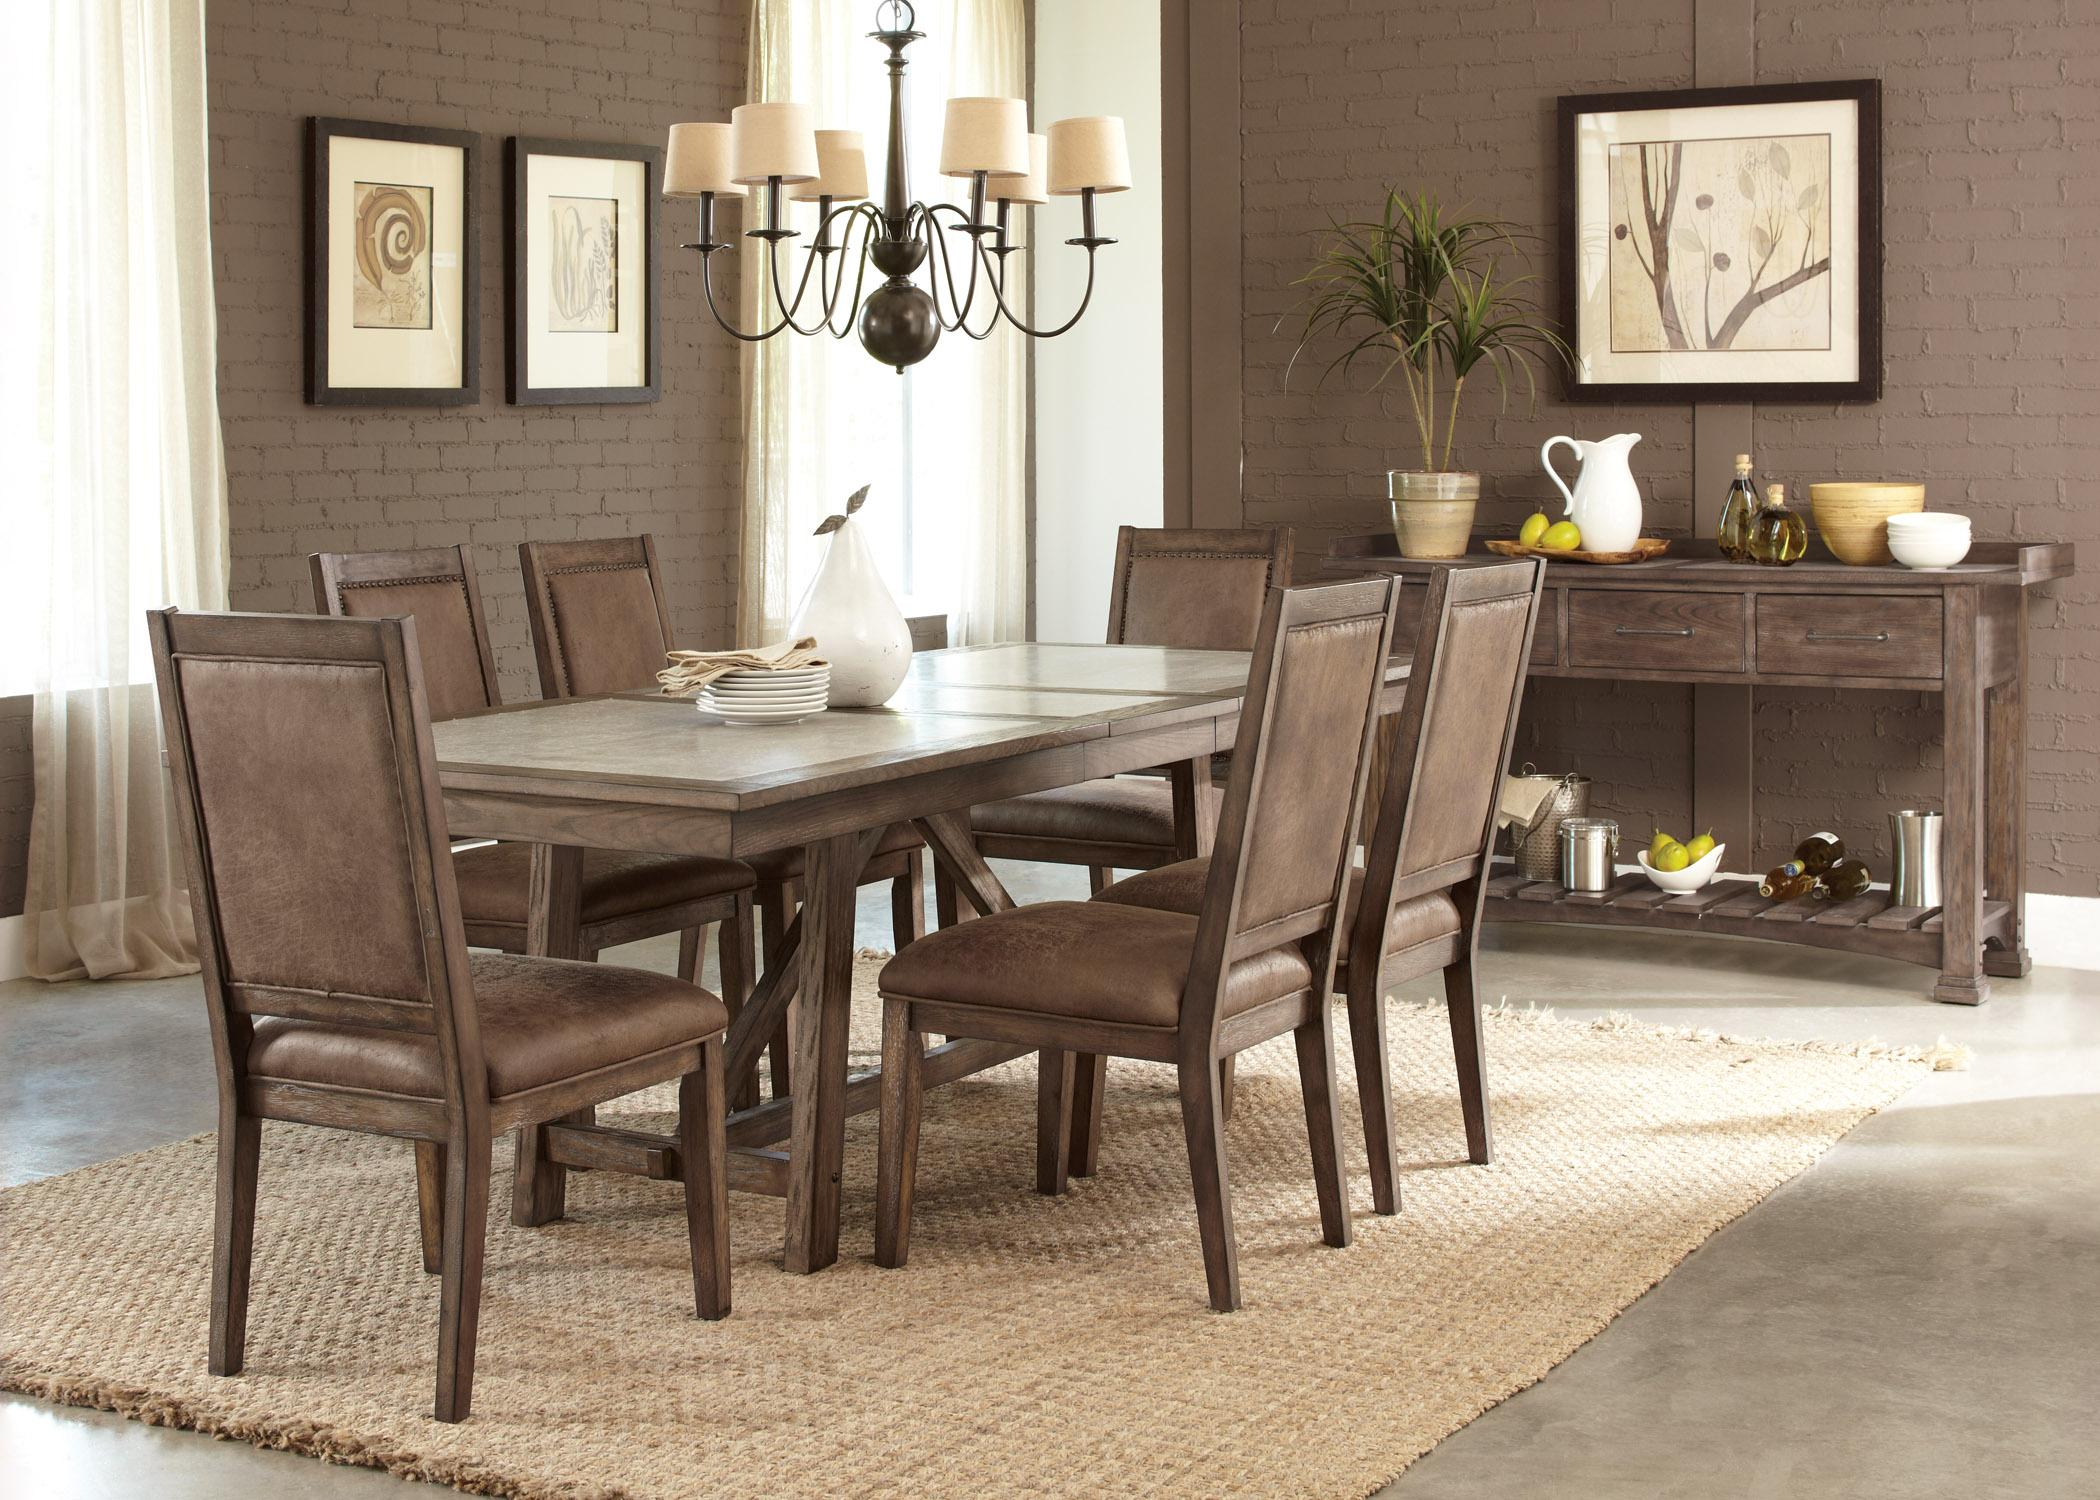 liberty furniture stone brook casual dining room group. Black Bedroom Furniture Sets. Home Design Ideas